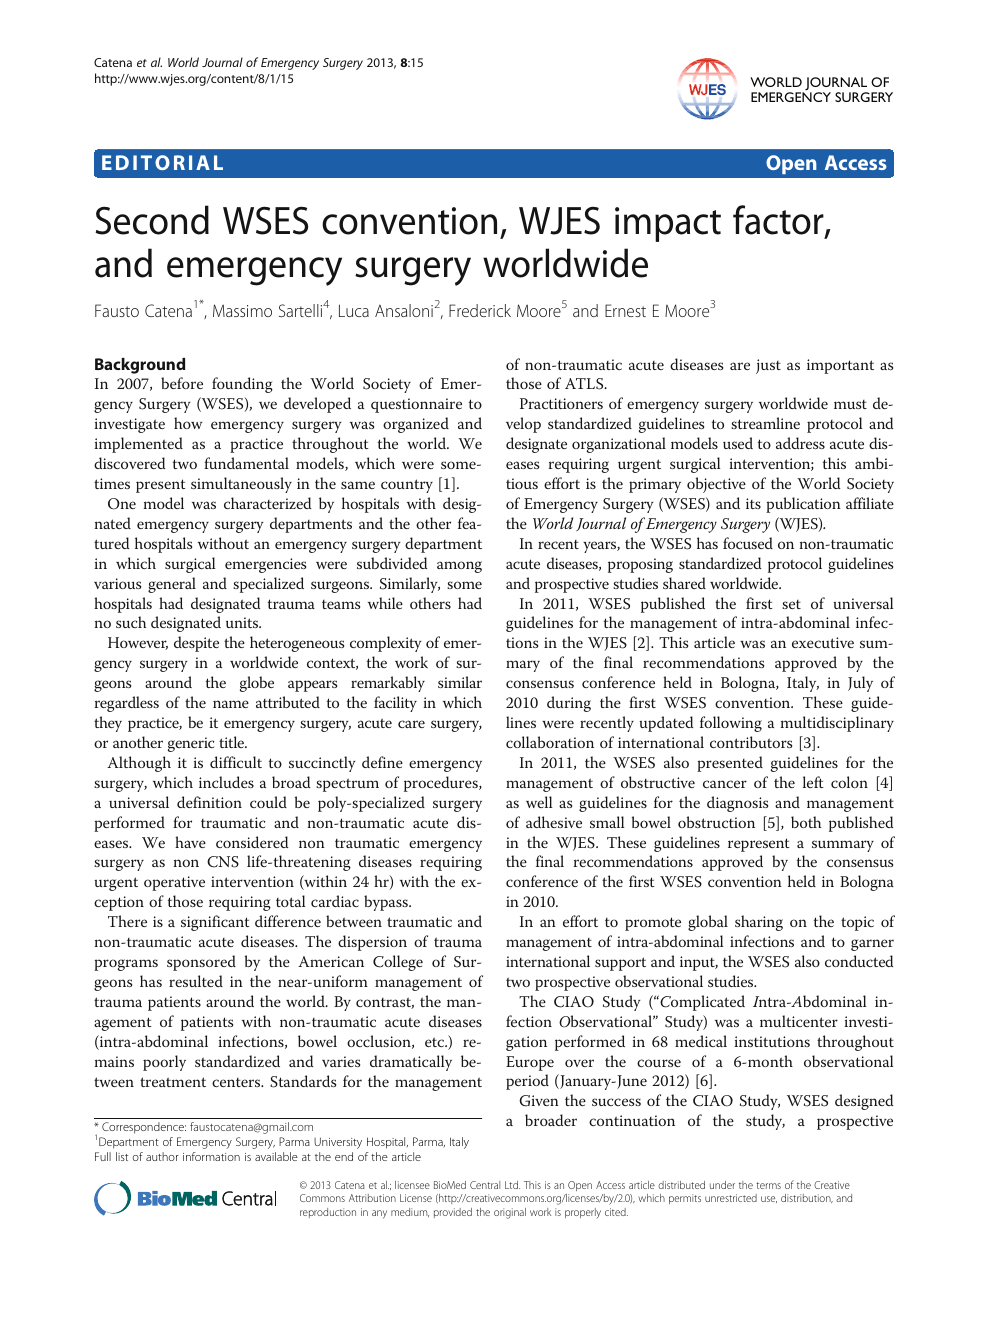 Second WSES convention, WJES impact factor, and emergency